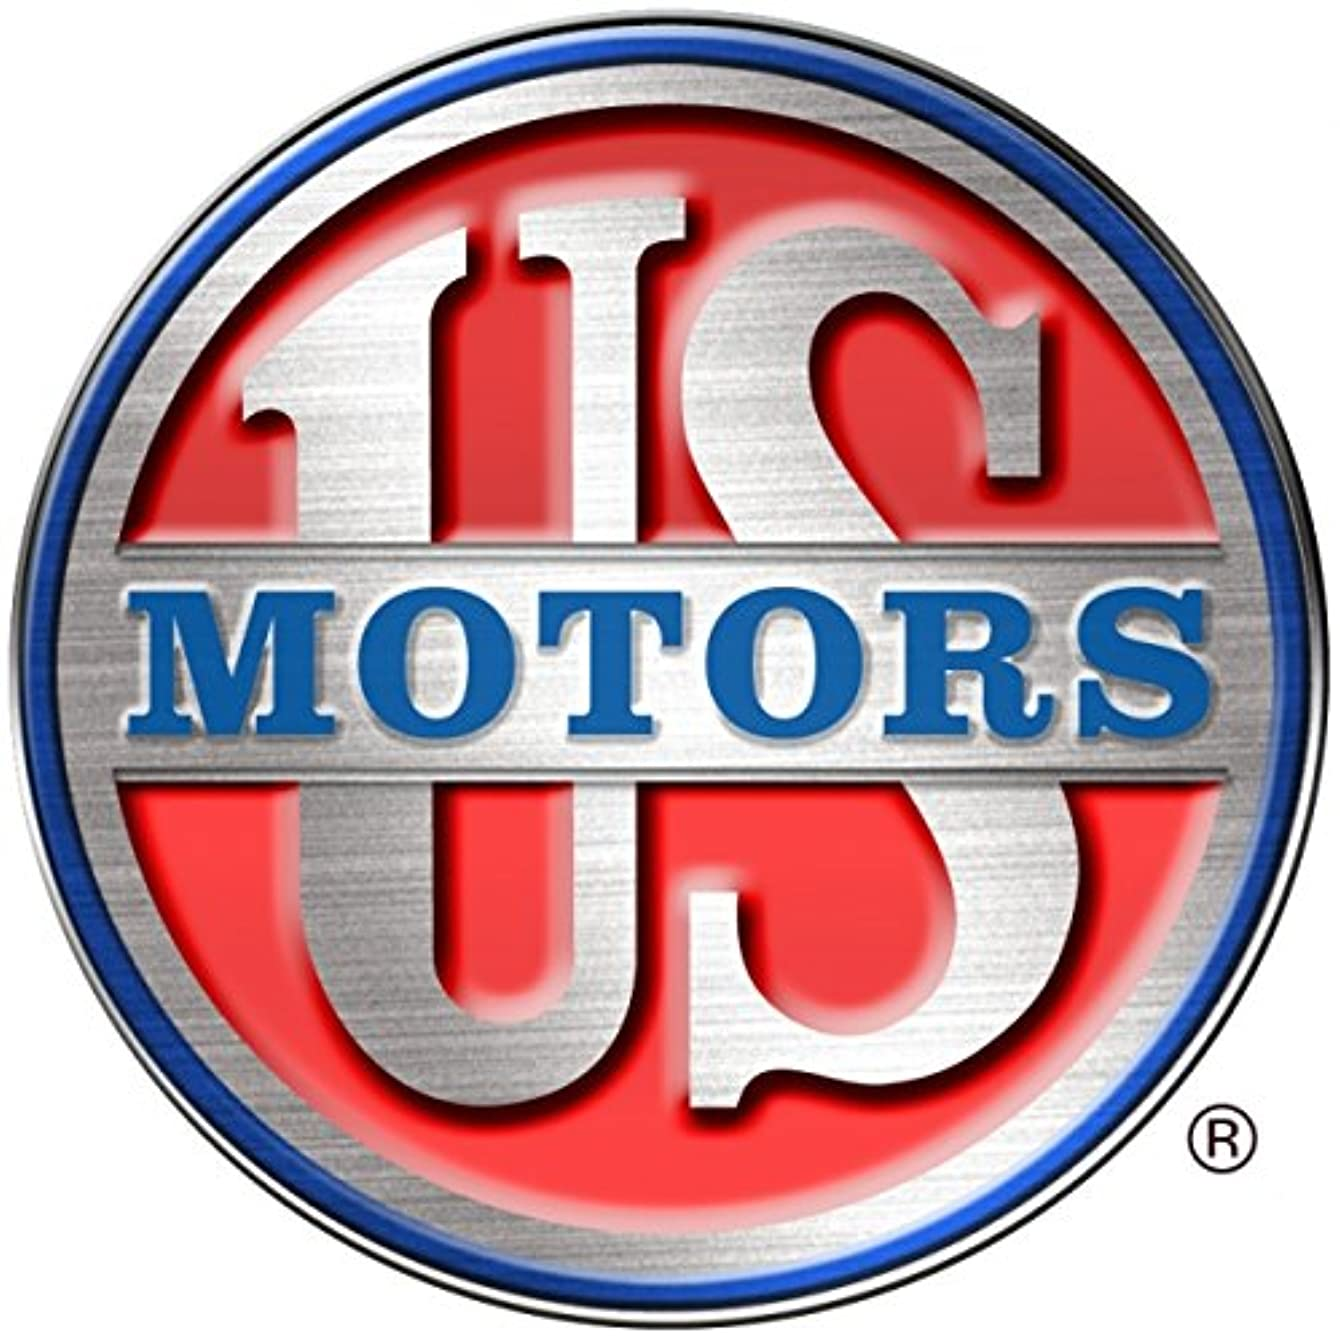 U.S. Motors 3/4 HP Evaporative Cooler Motor